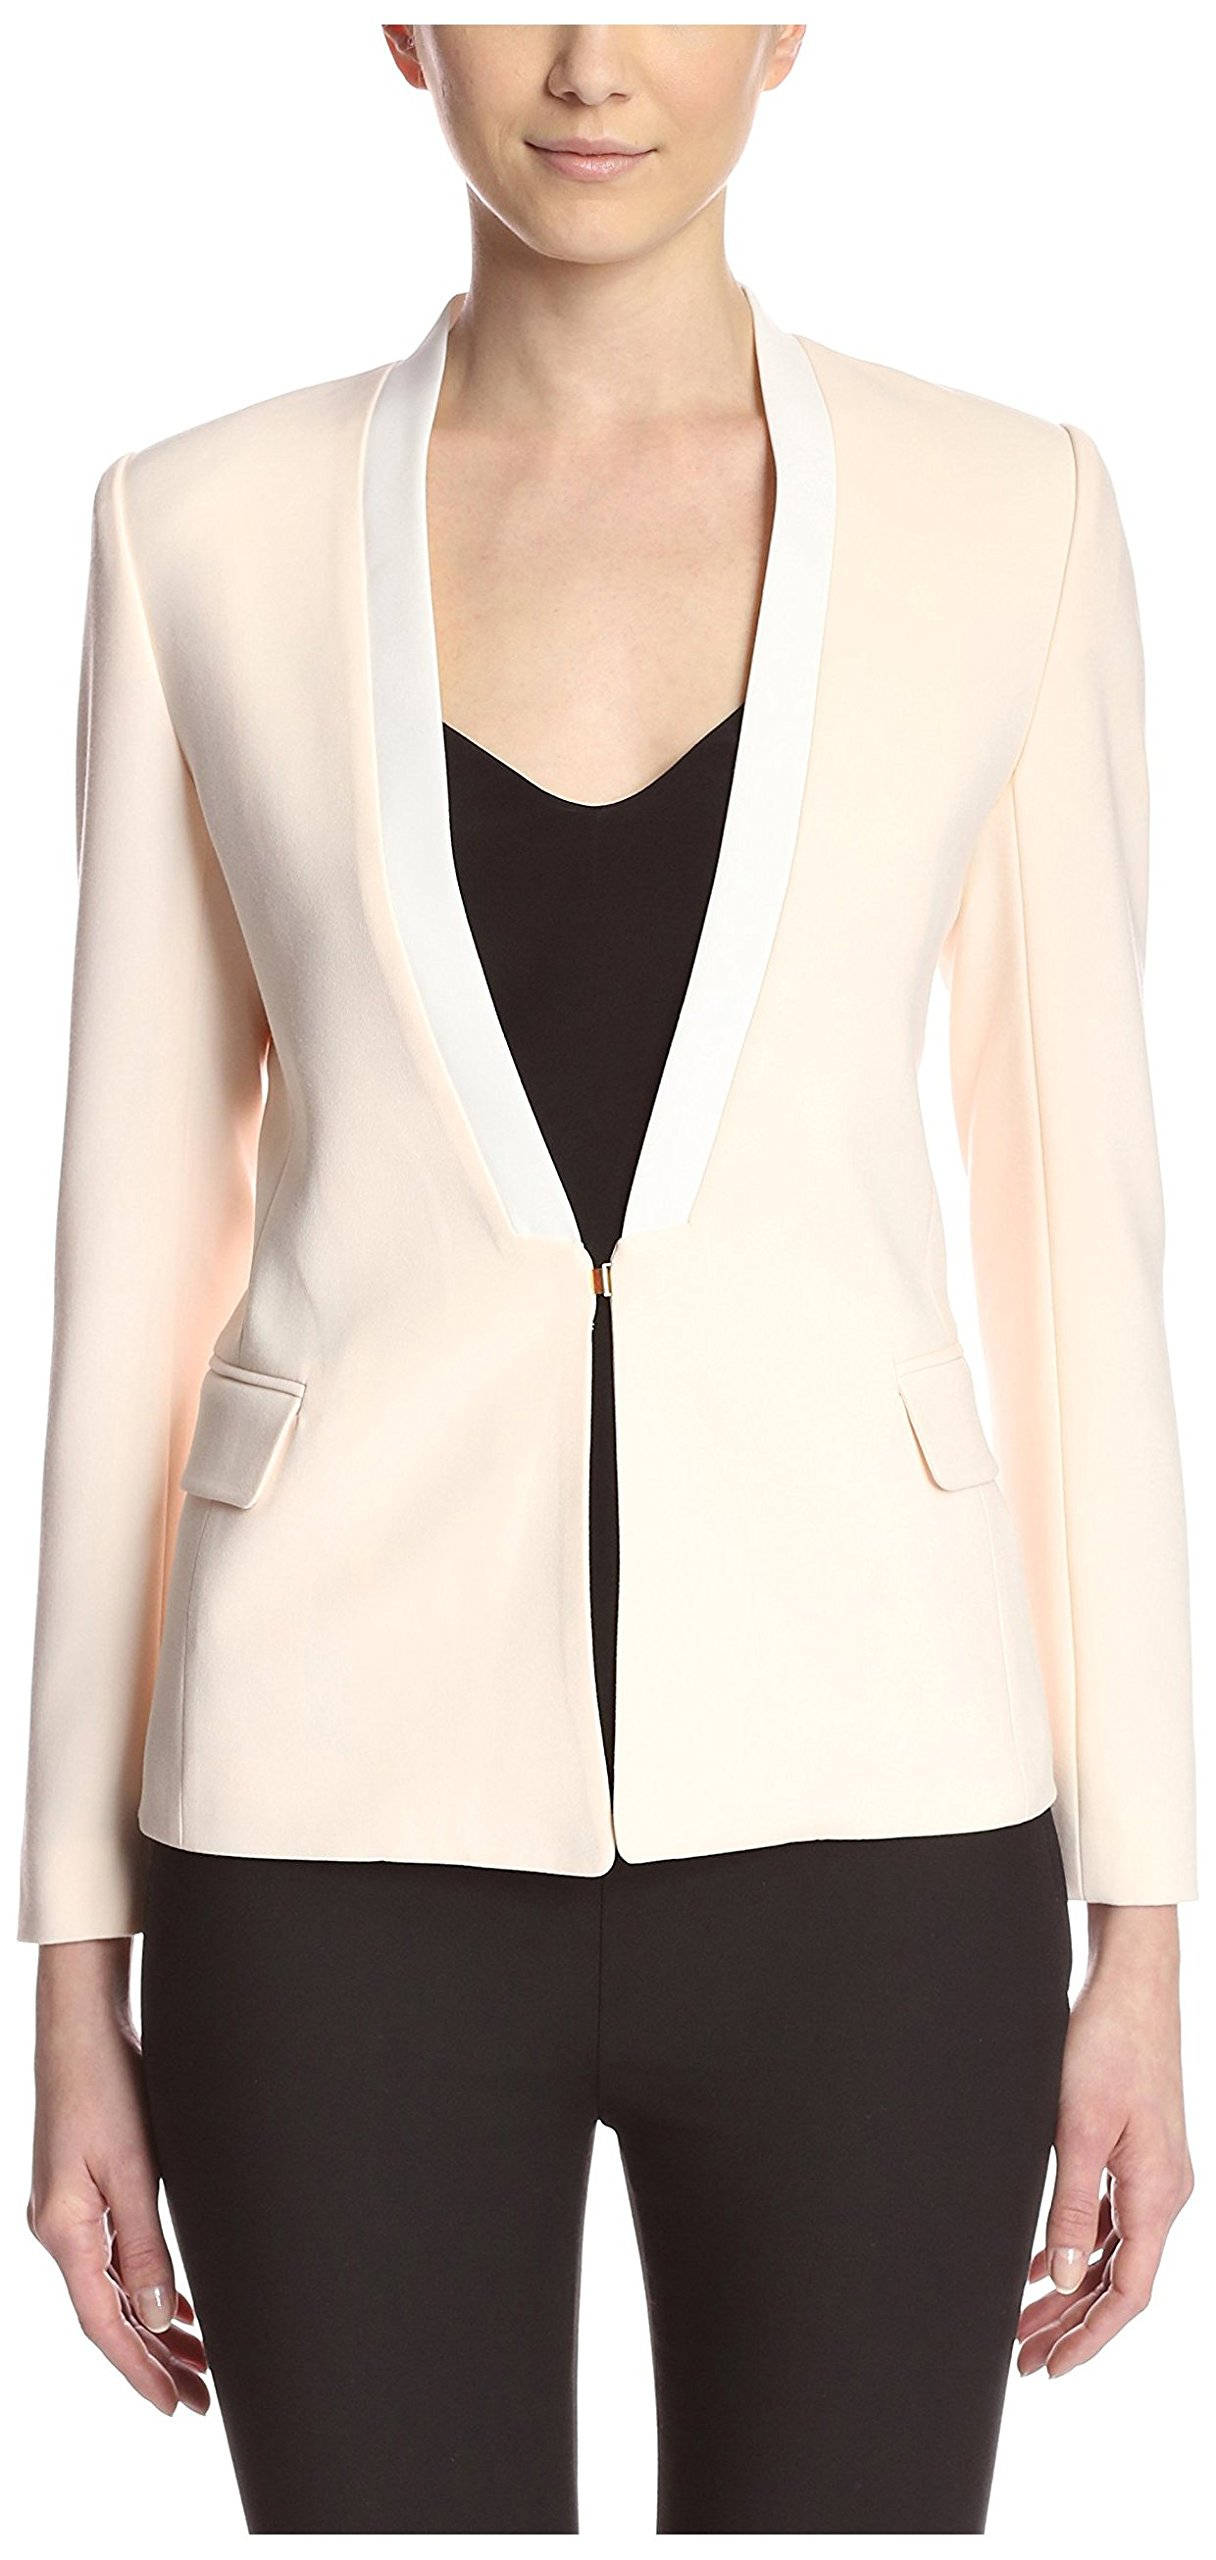 Aijek Women's Love Charm Blazer, Blush/White, 4/L US